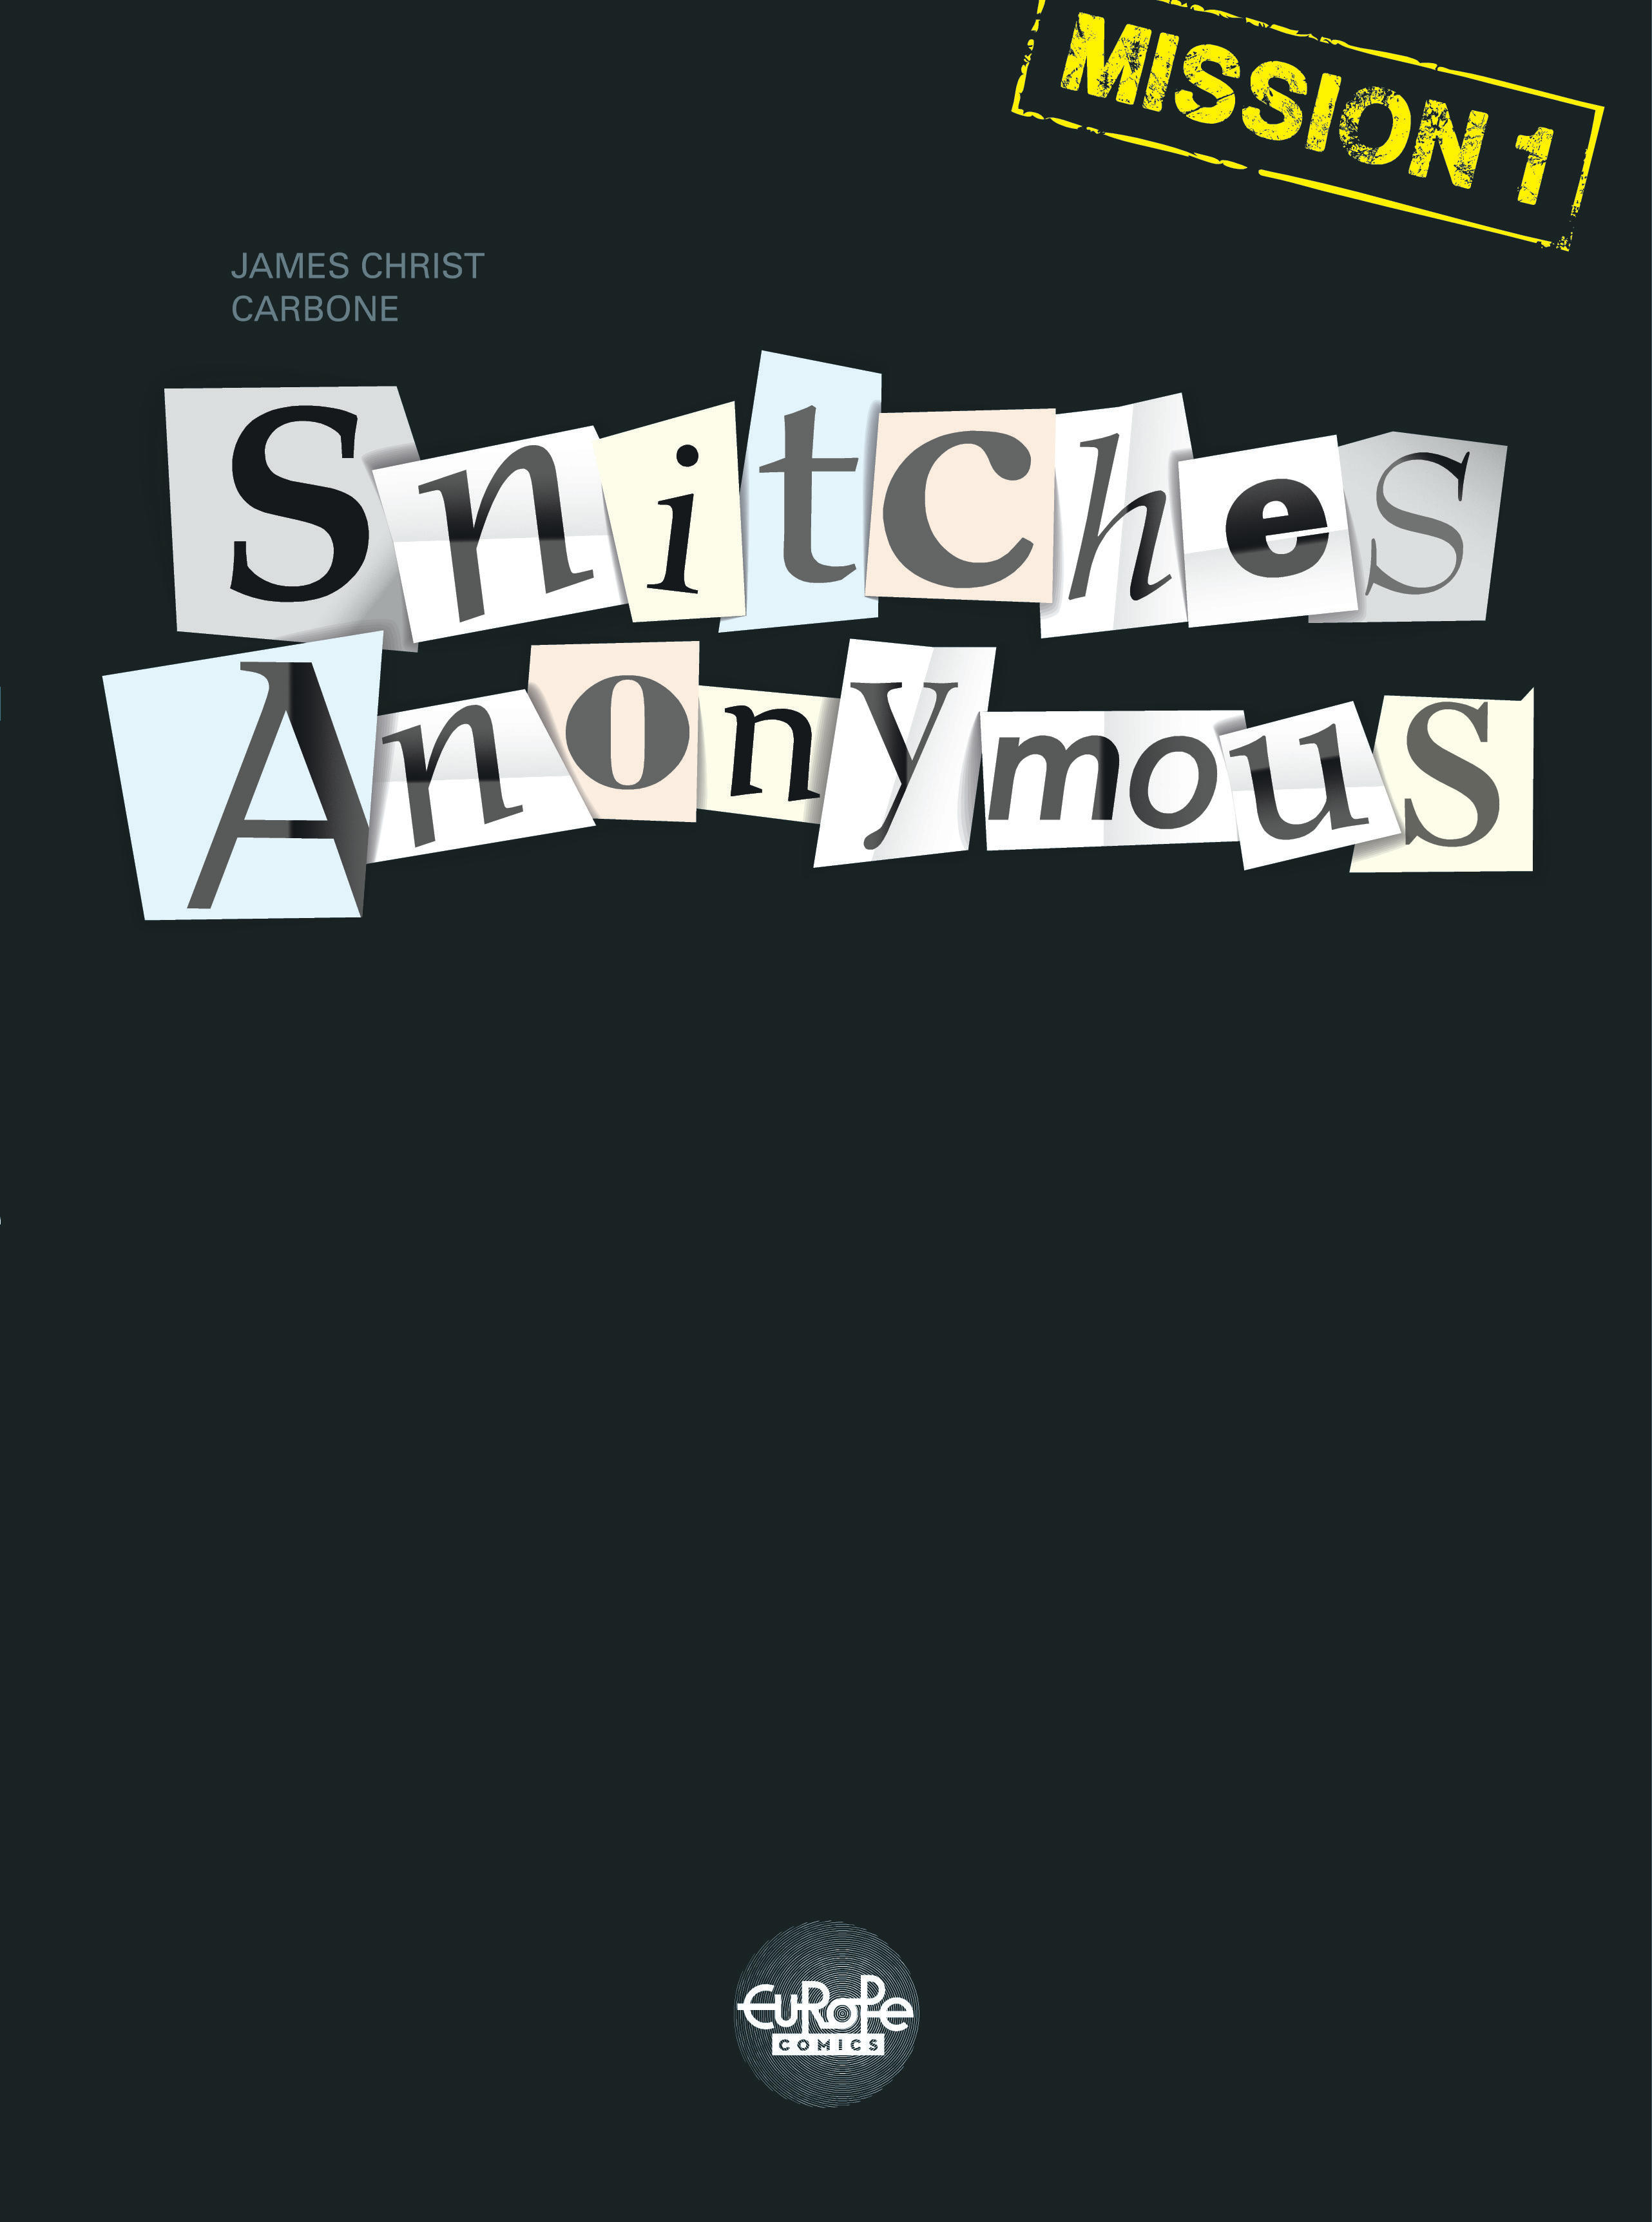 Vignette du livre Snitches Anonymous - Mission 1